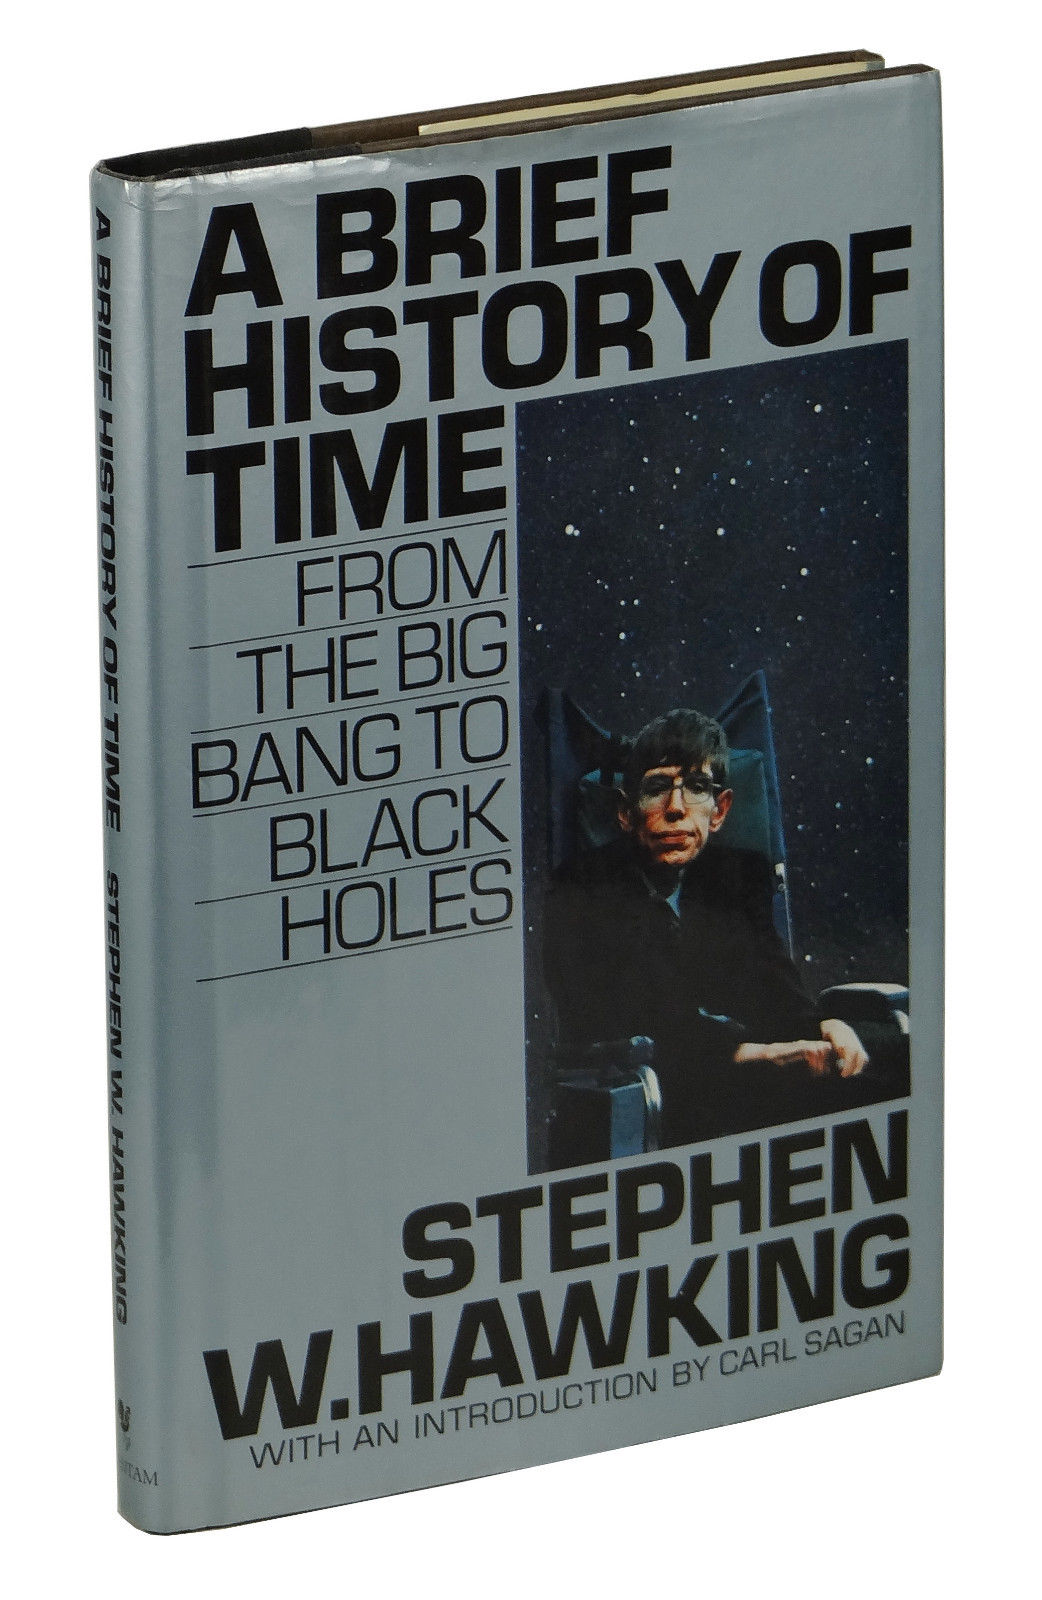 A Brief History Of Time From The Big Bang To Black Holes By Stephen Hawking On Burnside Rare Books